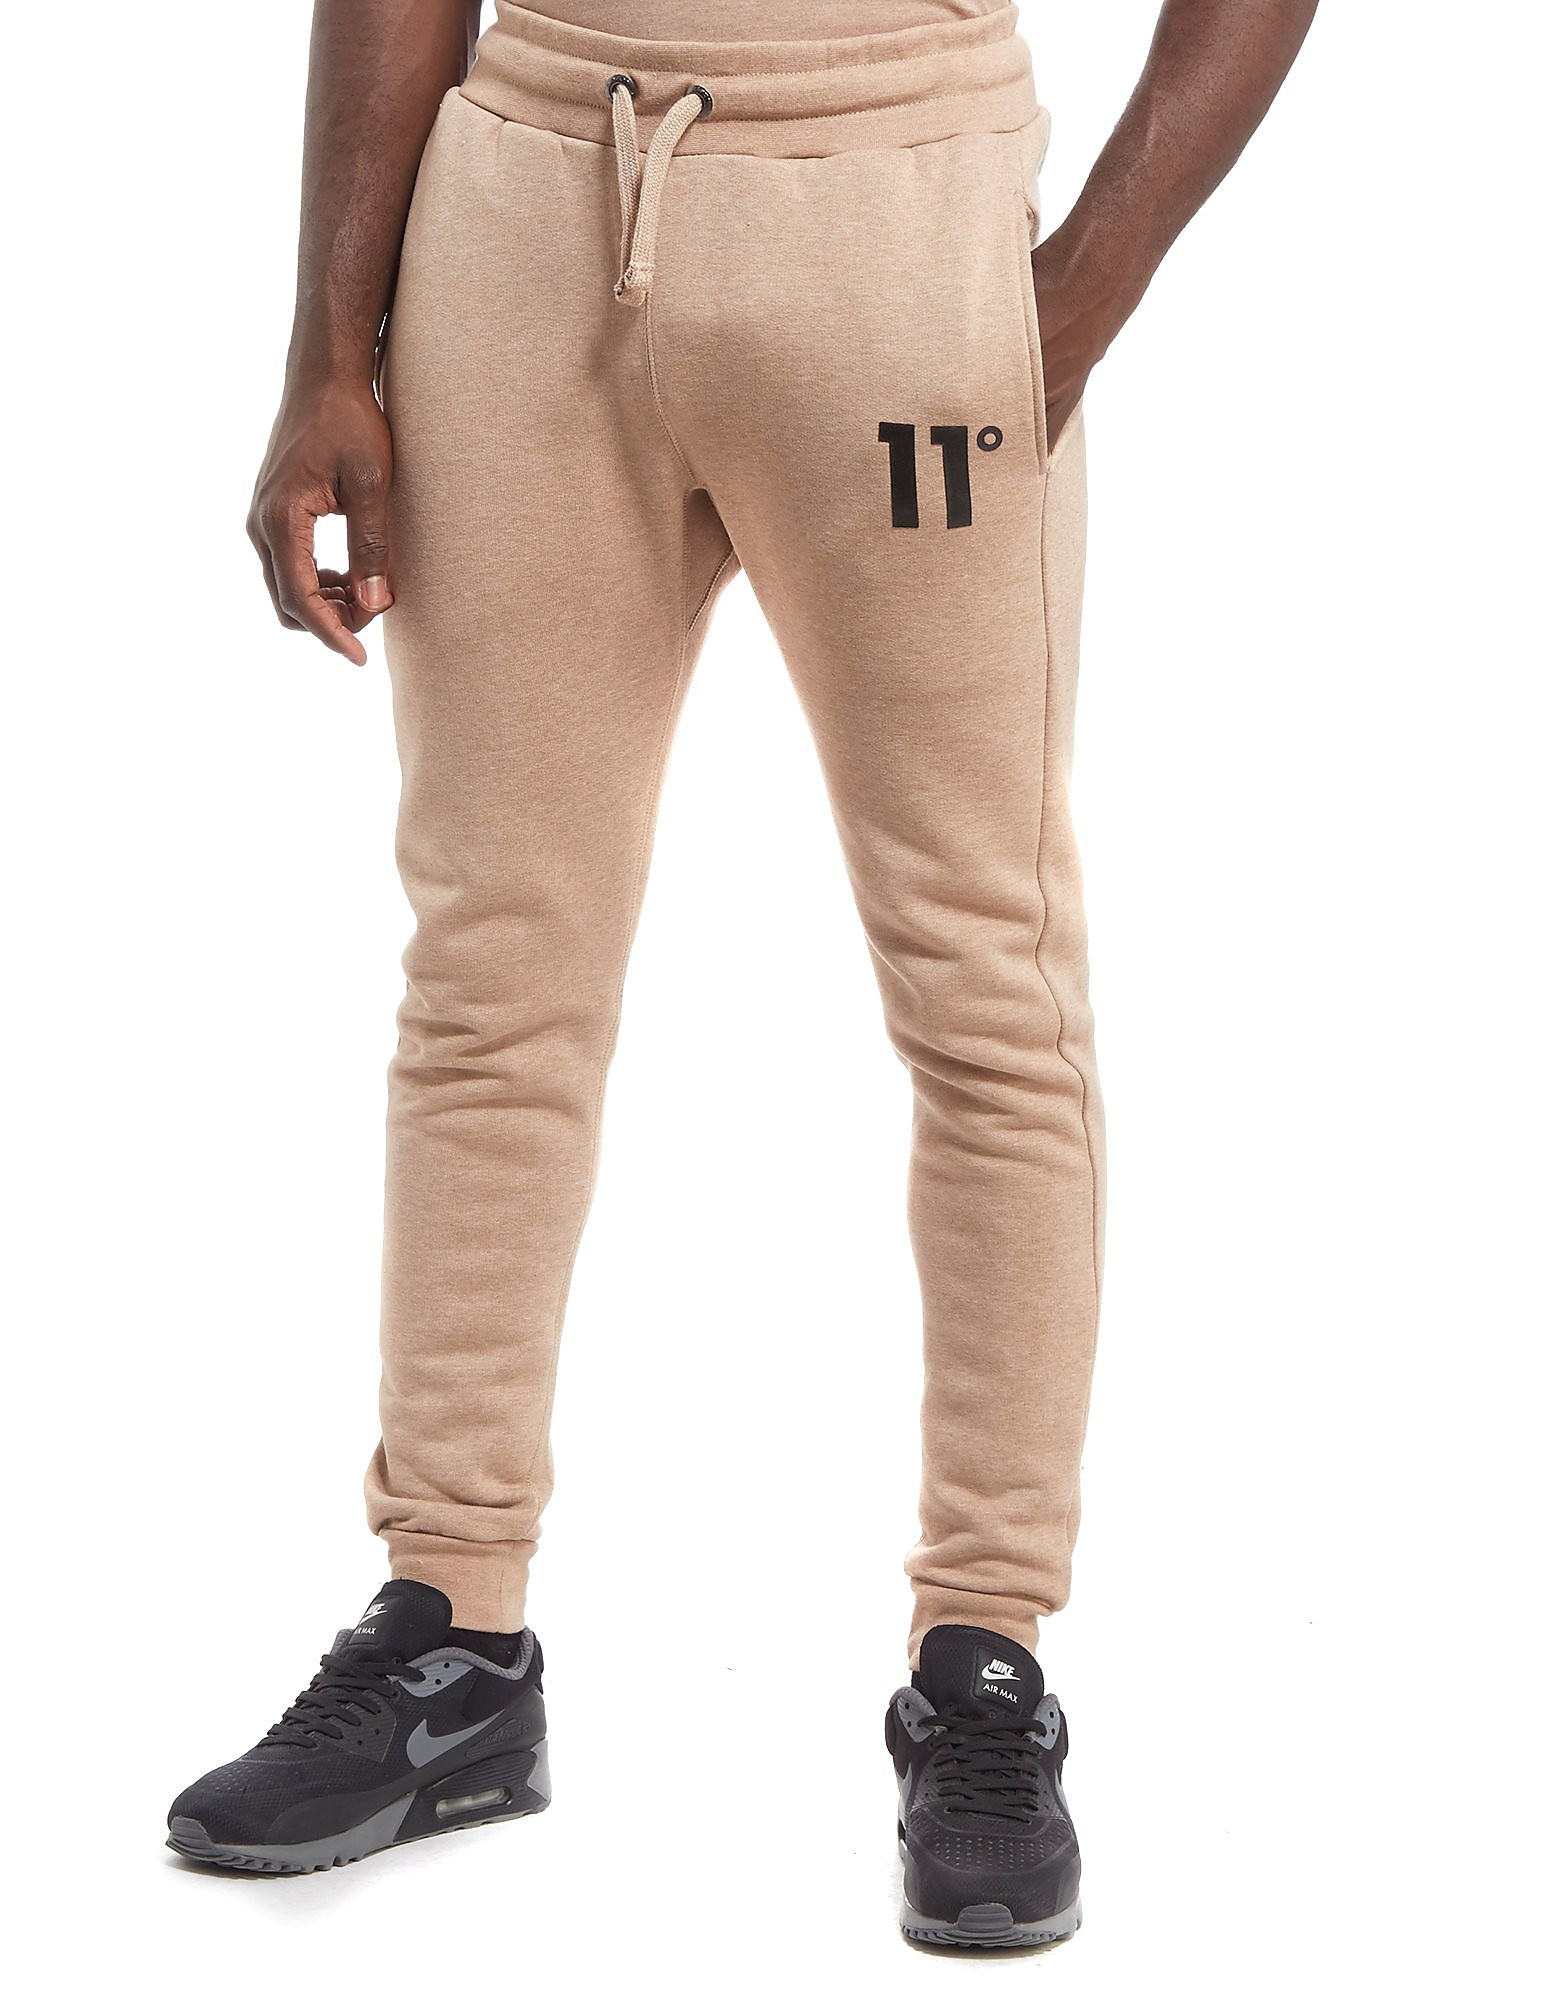 Image de 11 Degrees Joggers Core Homme - Tan, Tan